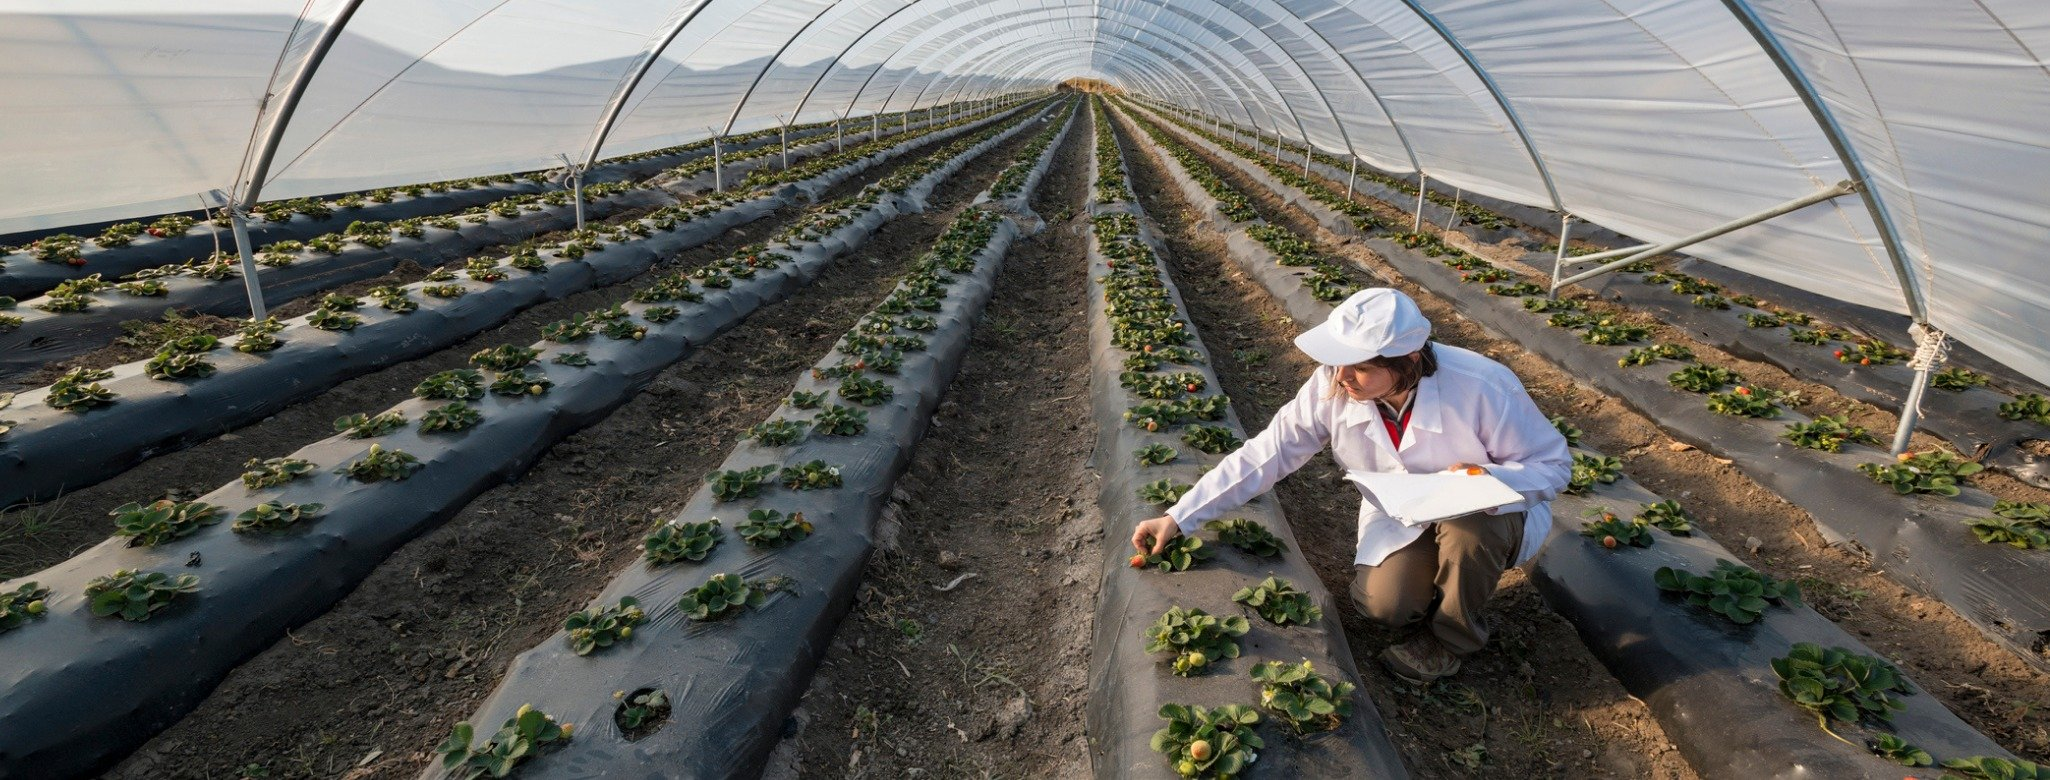 , Sustainable Food Tastes Better – How we got there, The Circular Economy